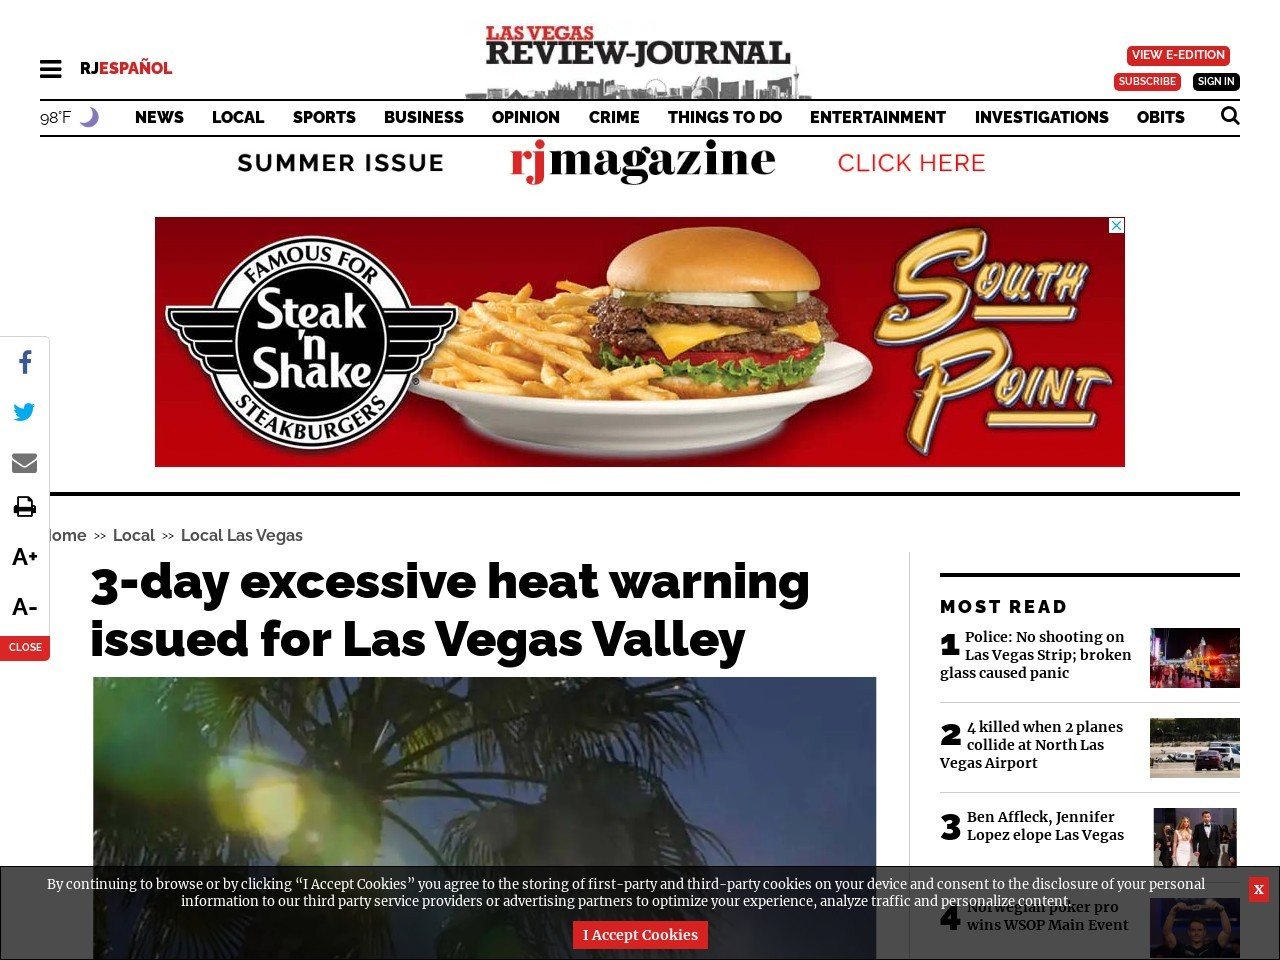 3-day excessive heat warning issued for Las Vegas Valley